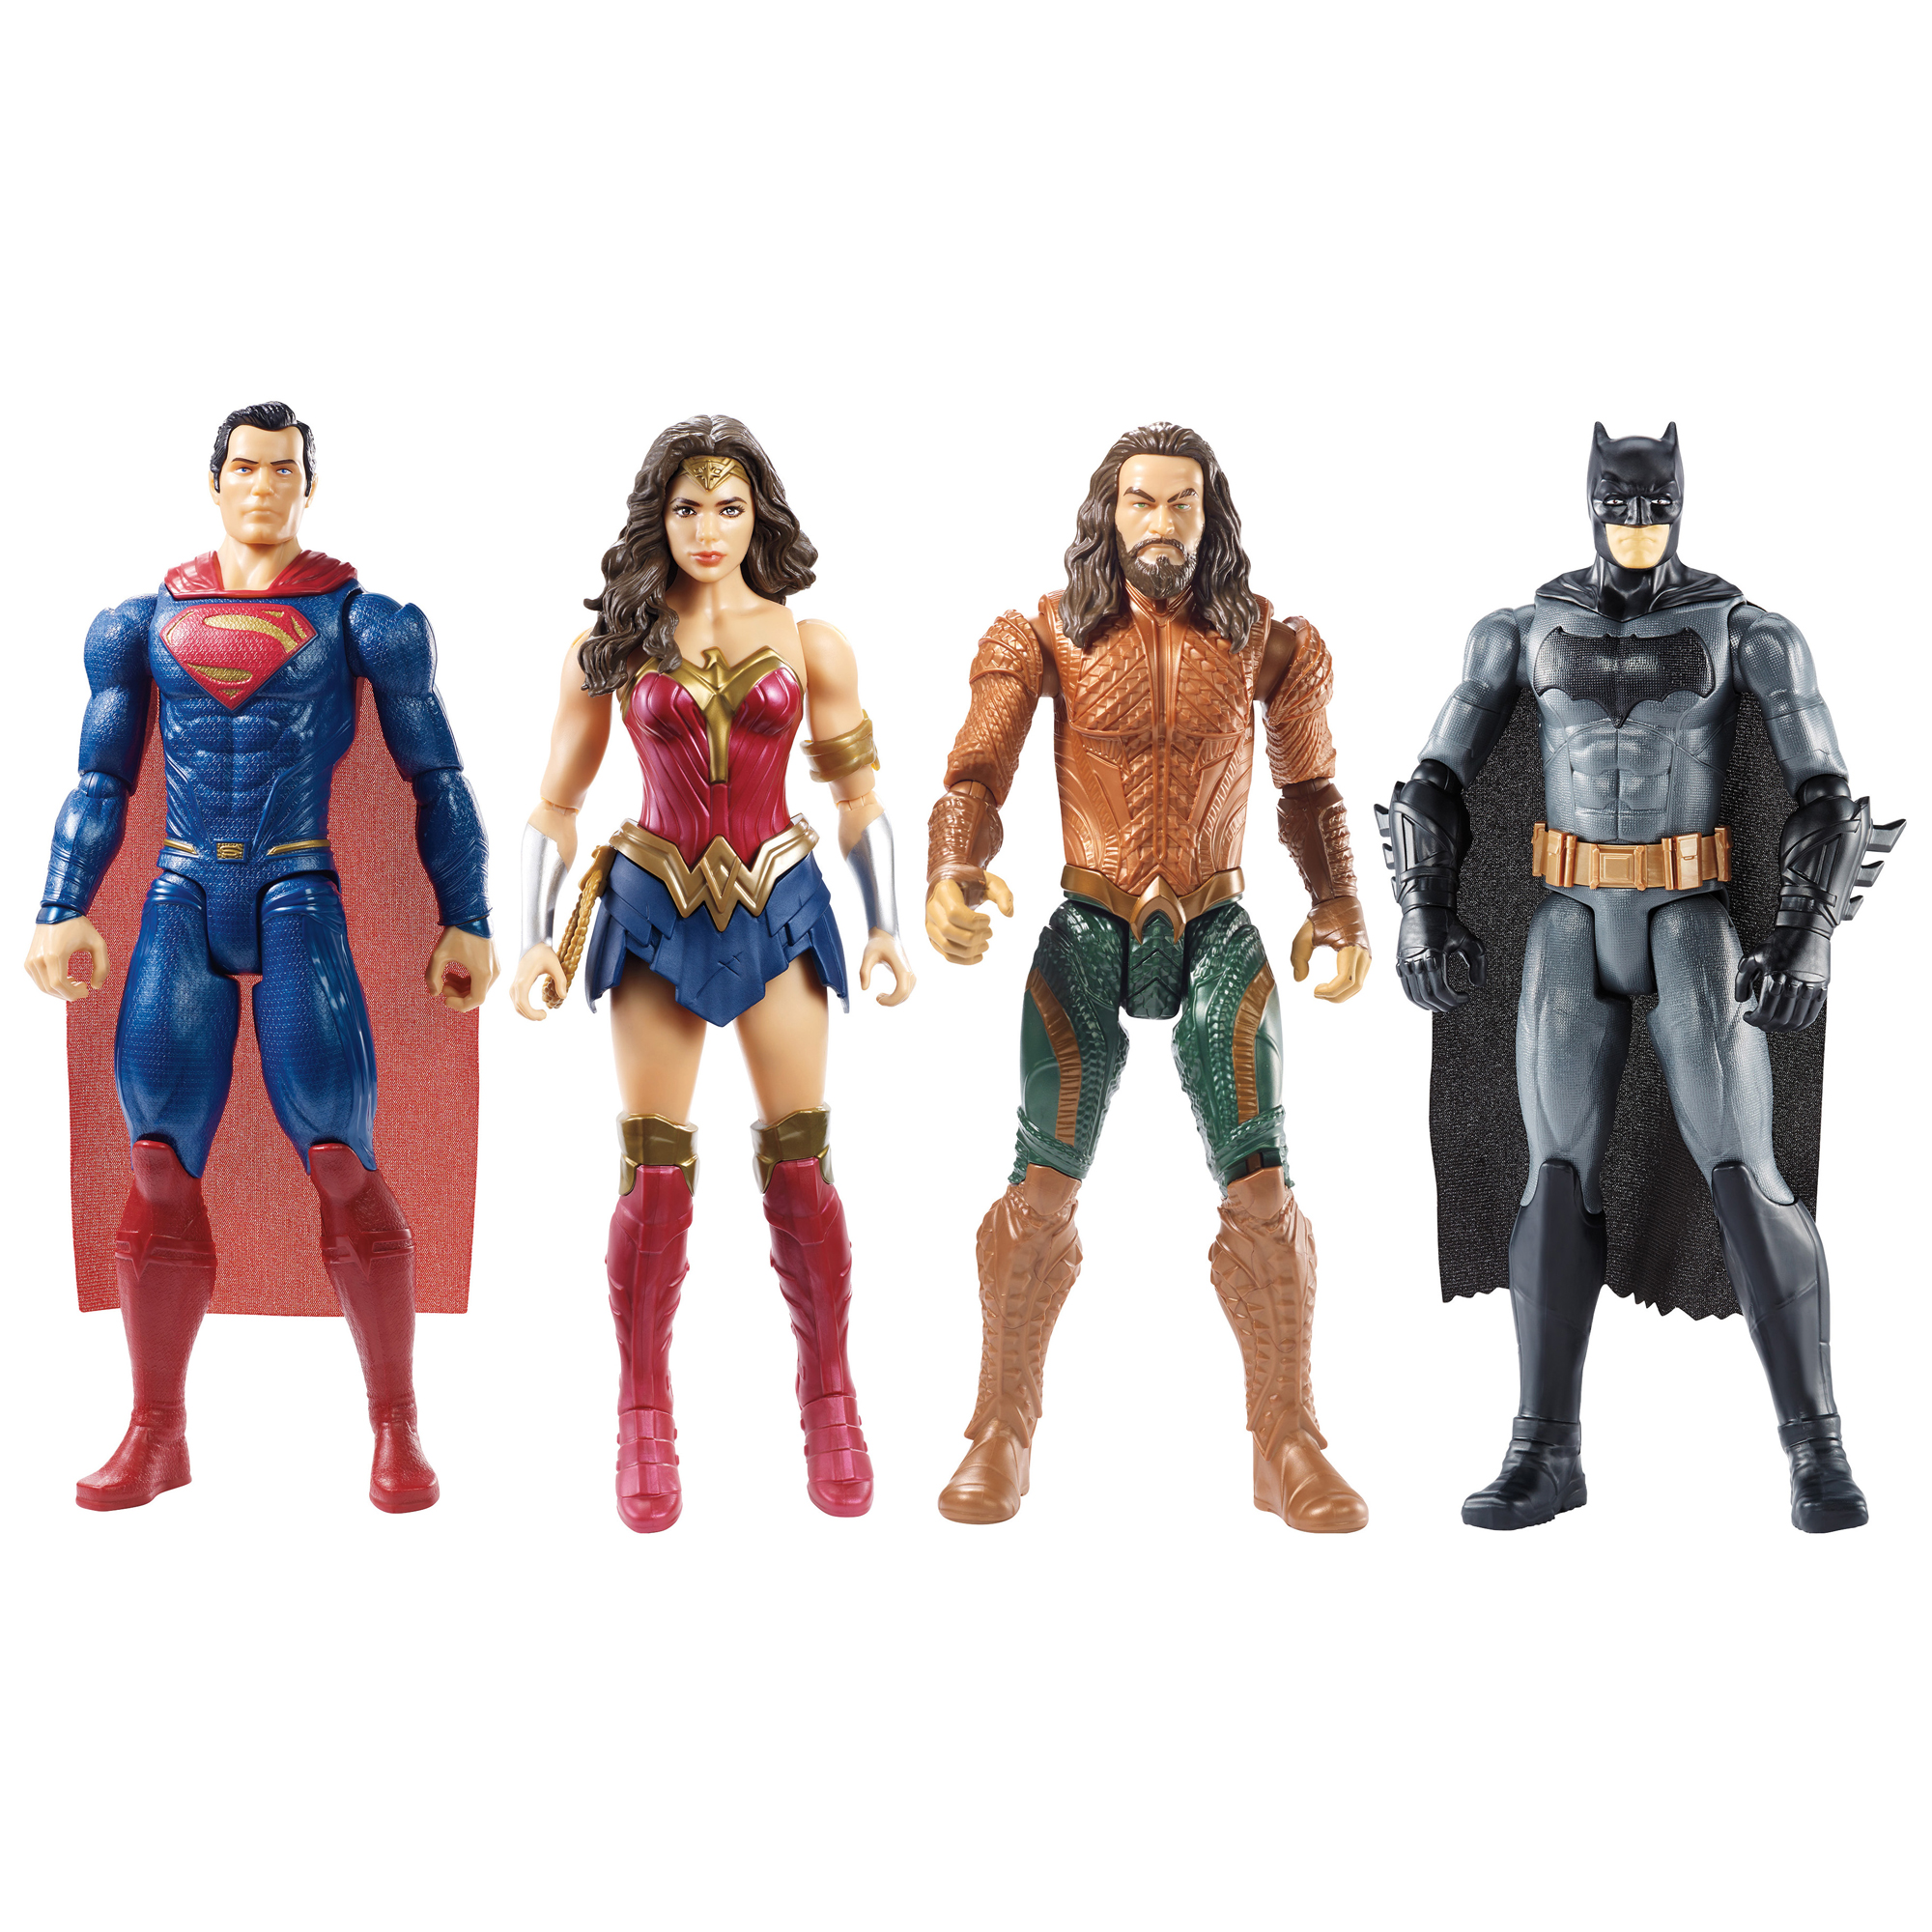 DC Justice League True Moves Series Figure Assortment